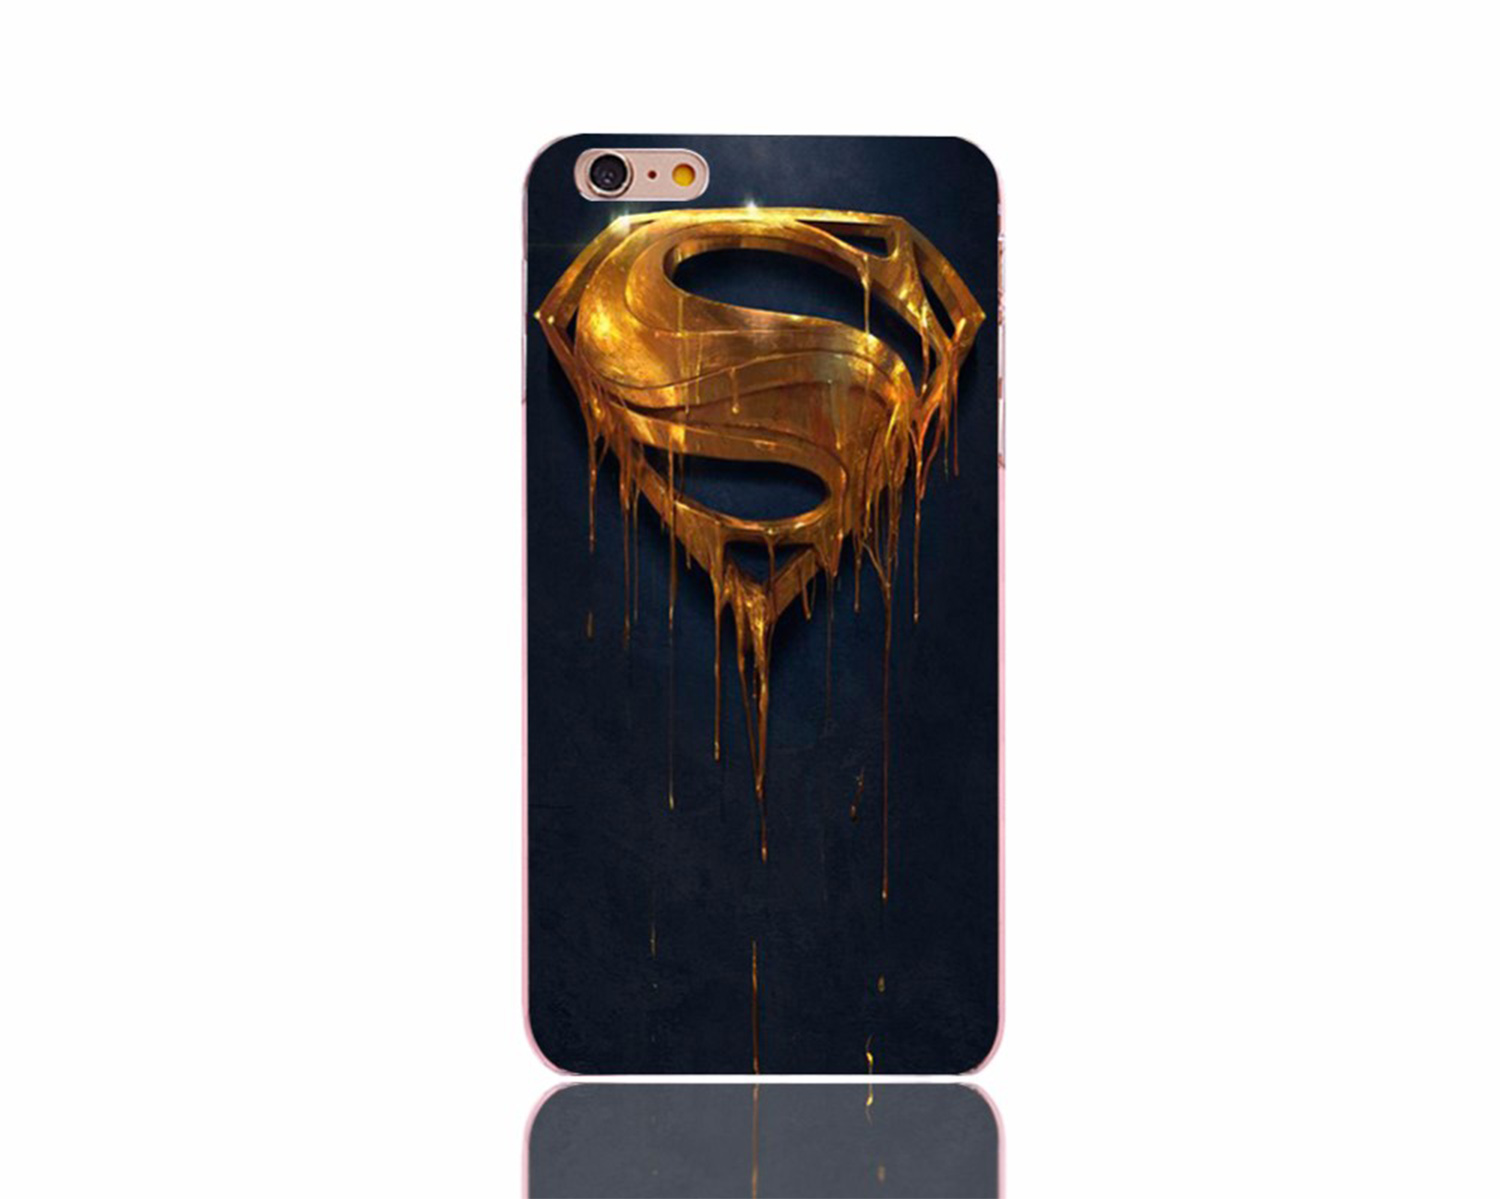 Kritzel Superheroes Collection für iPhone 6 / 6s - SHC #18